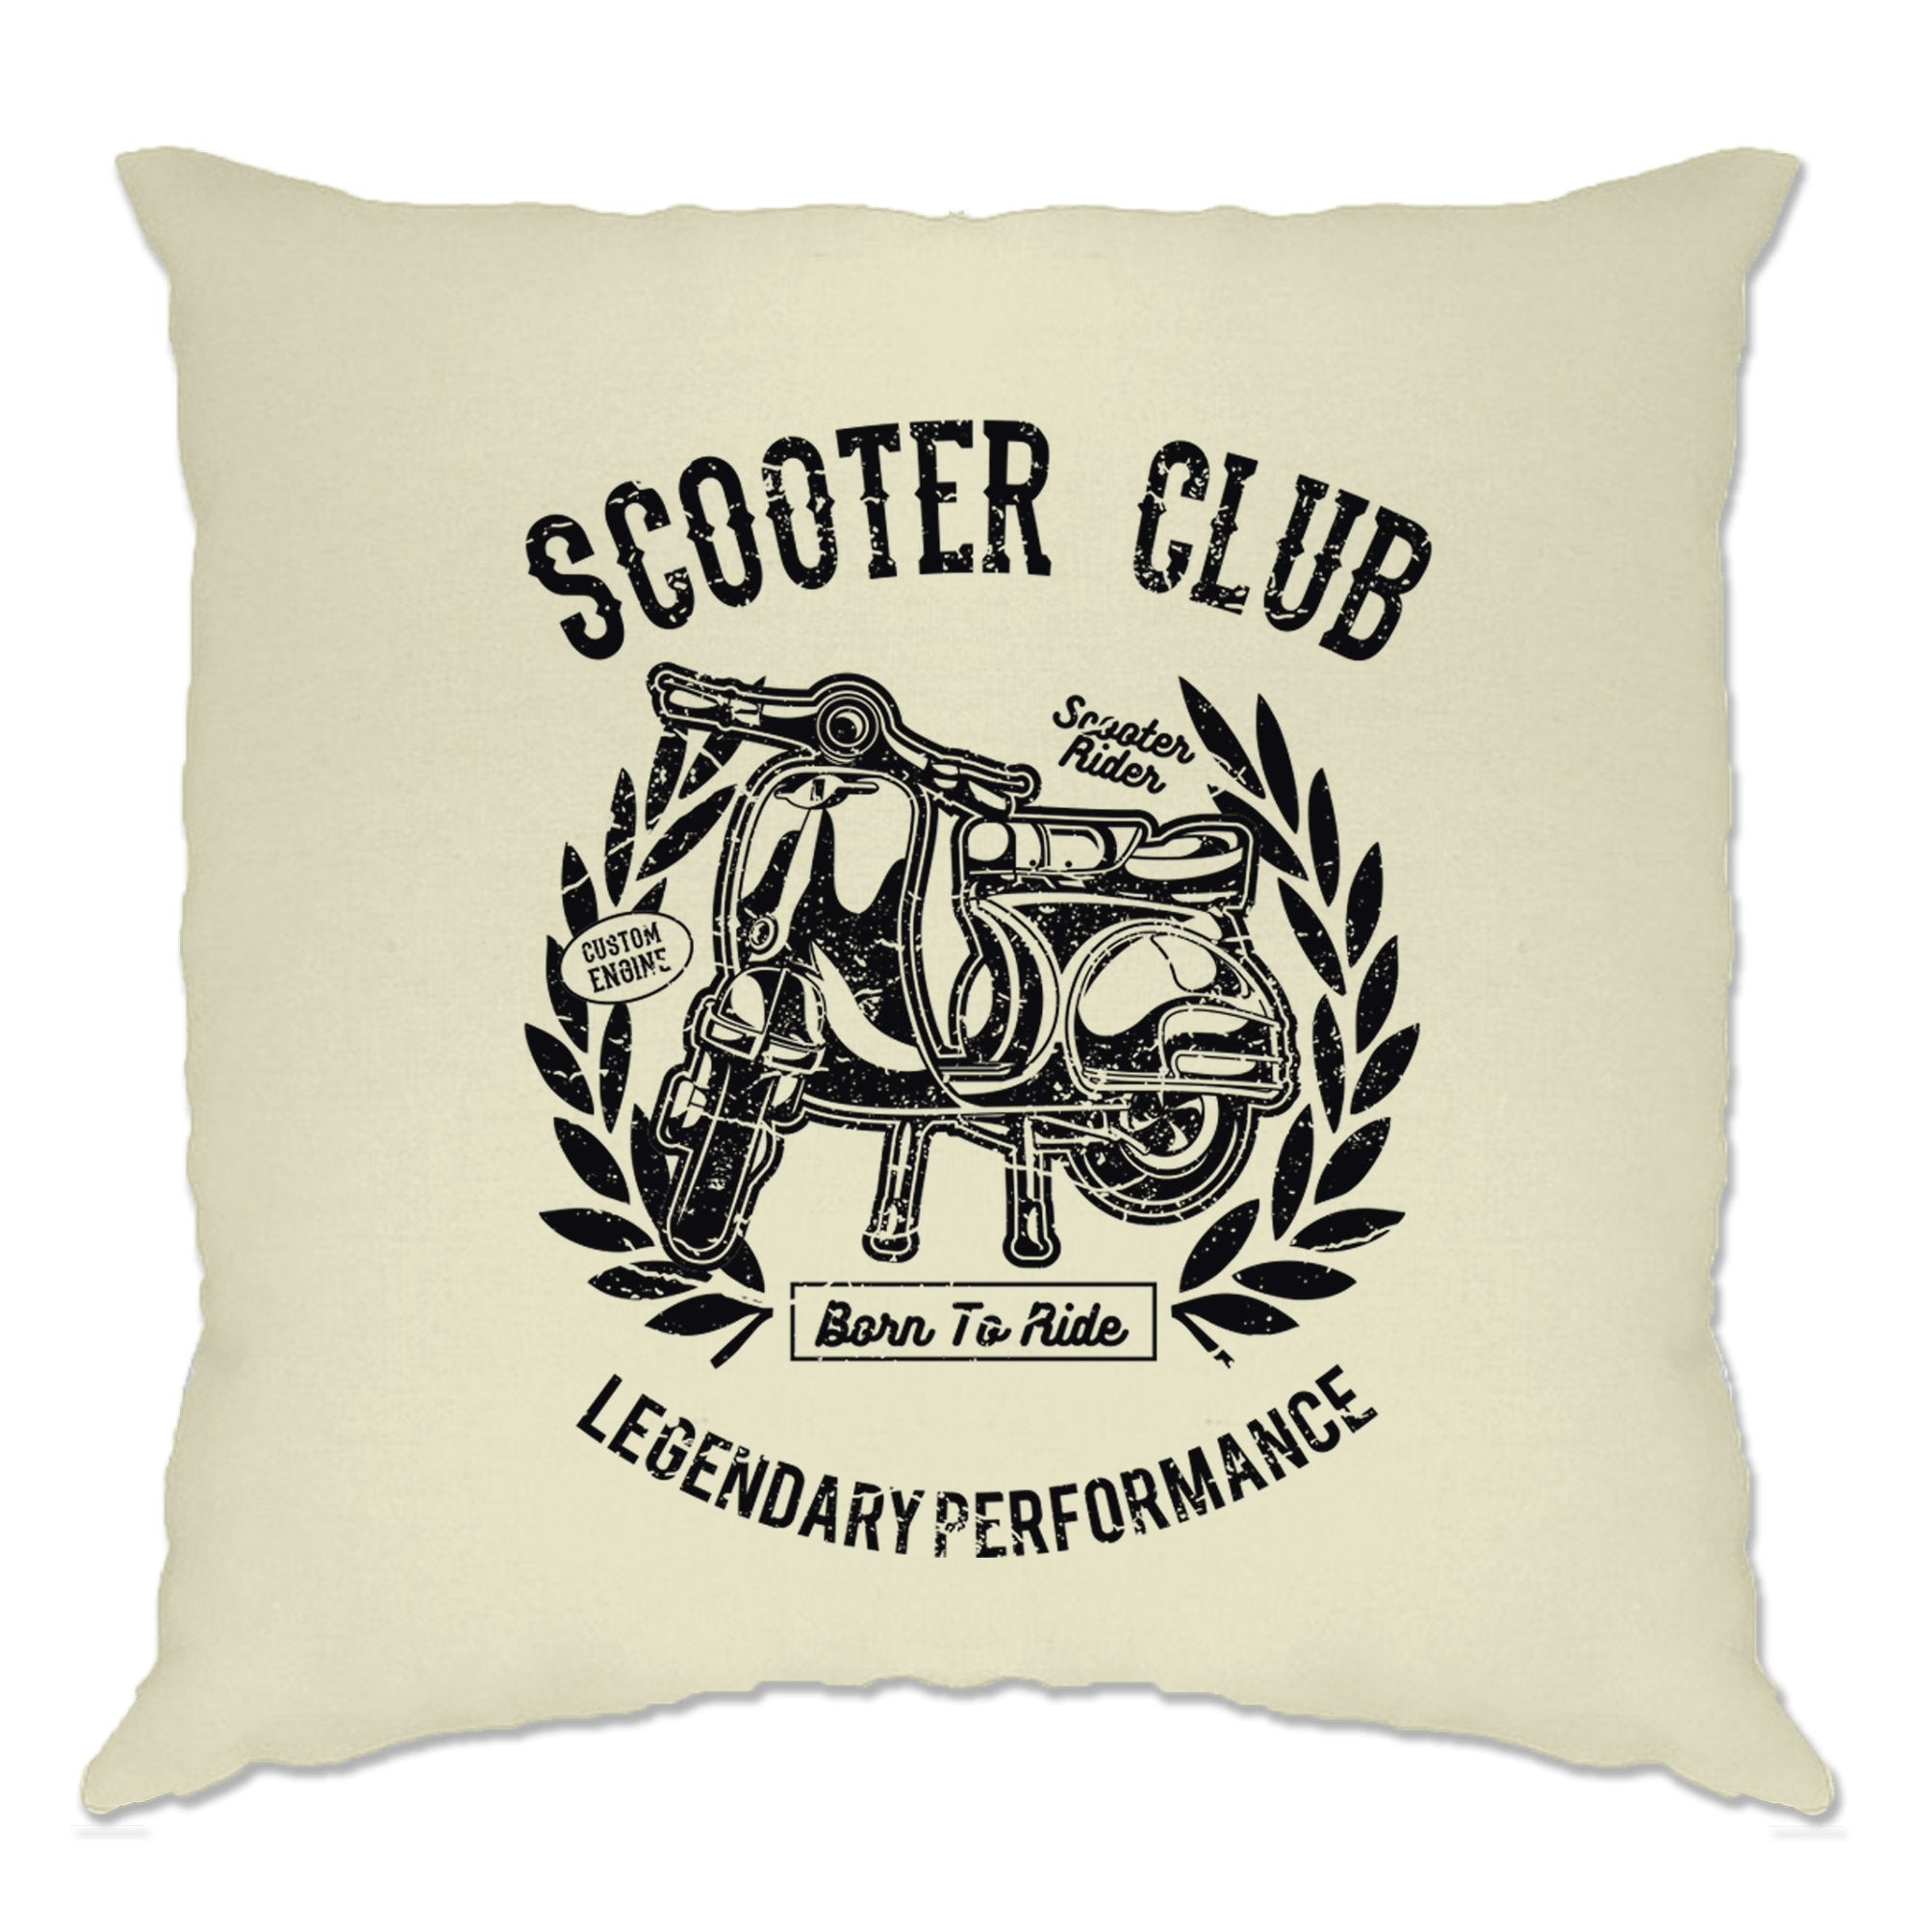 Motorbike Cushion Cover Scooter Club Legendary Performance